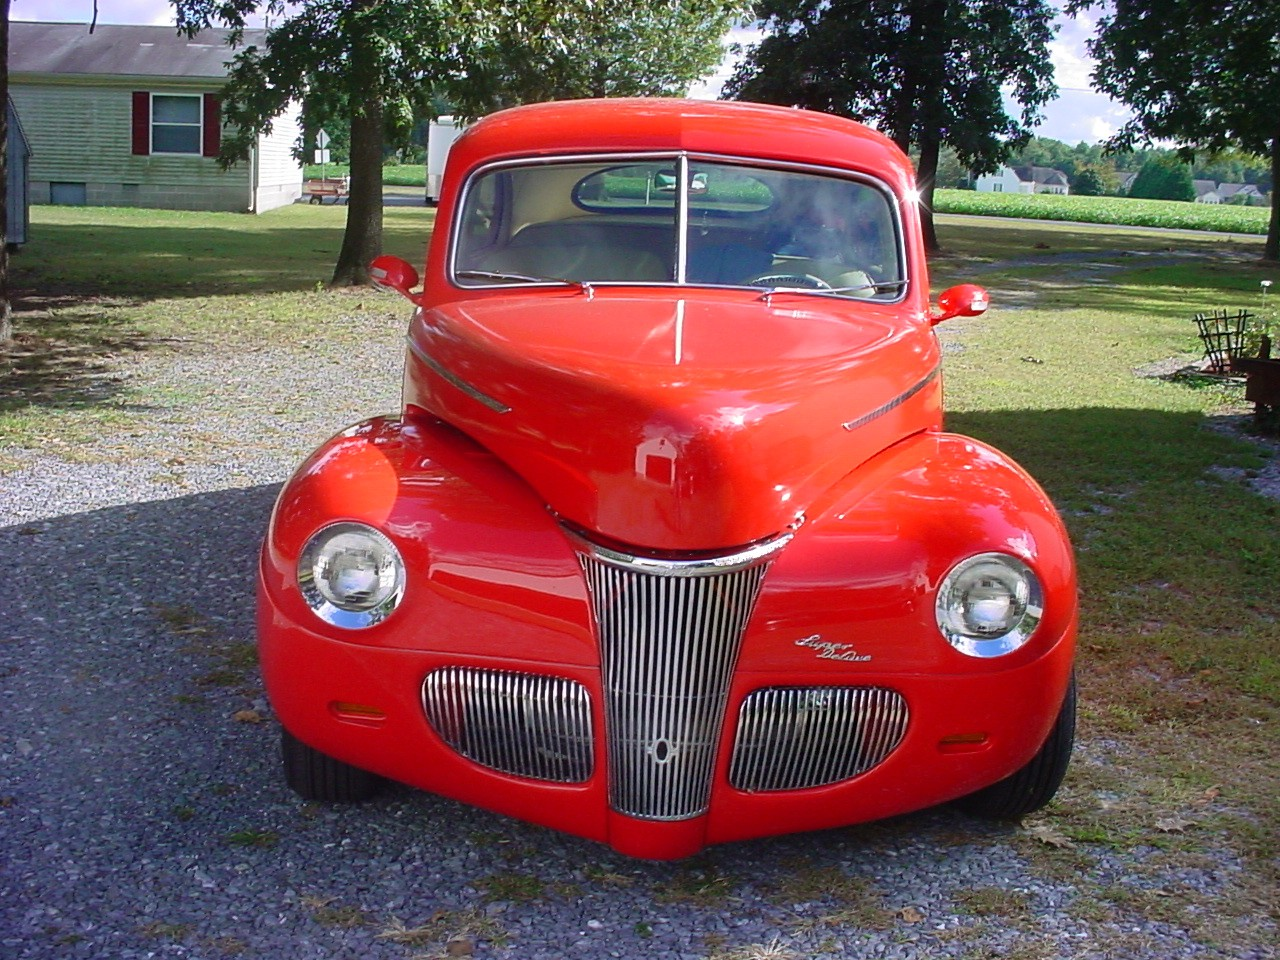 Classic Hot Rods For Sale And Street 1941 Ford Coupe Red Tudor